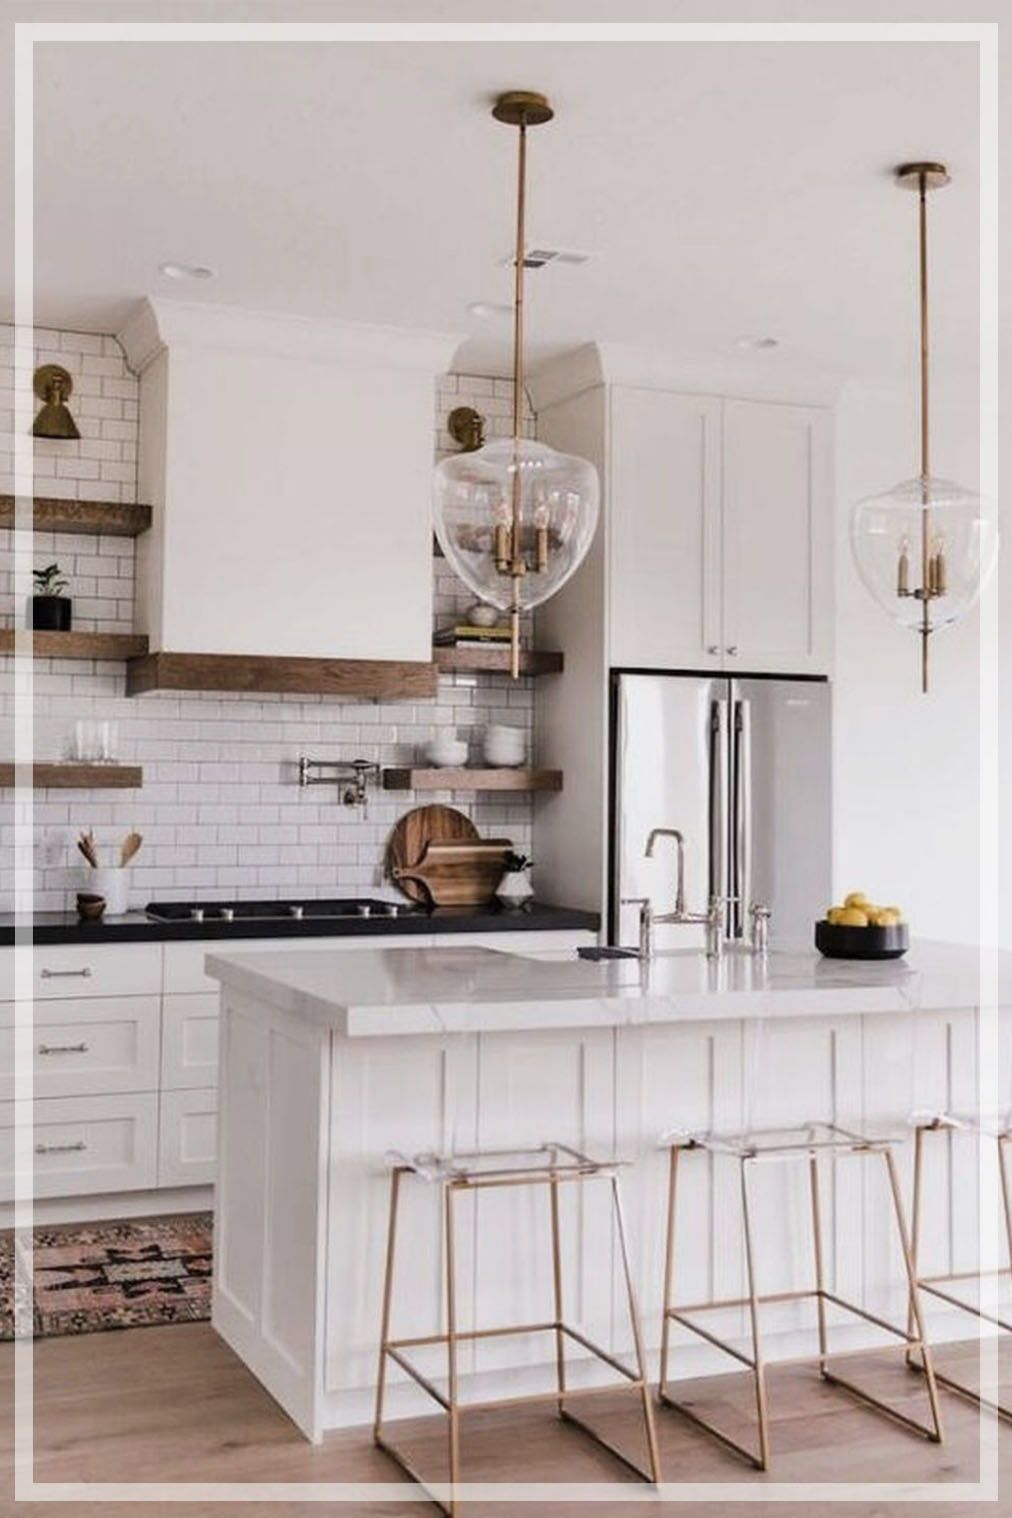 20 + Affordable Farmhouse Style Kitchen Ideas, Designs & How to ...